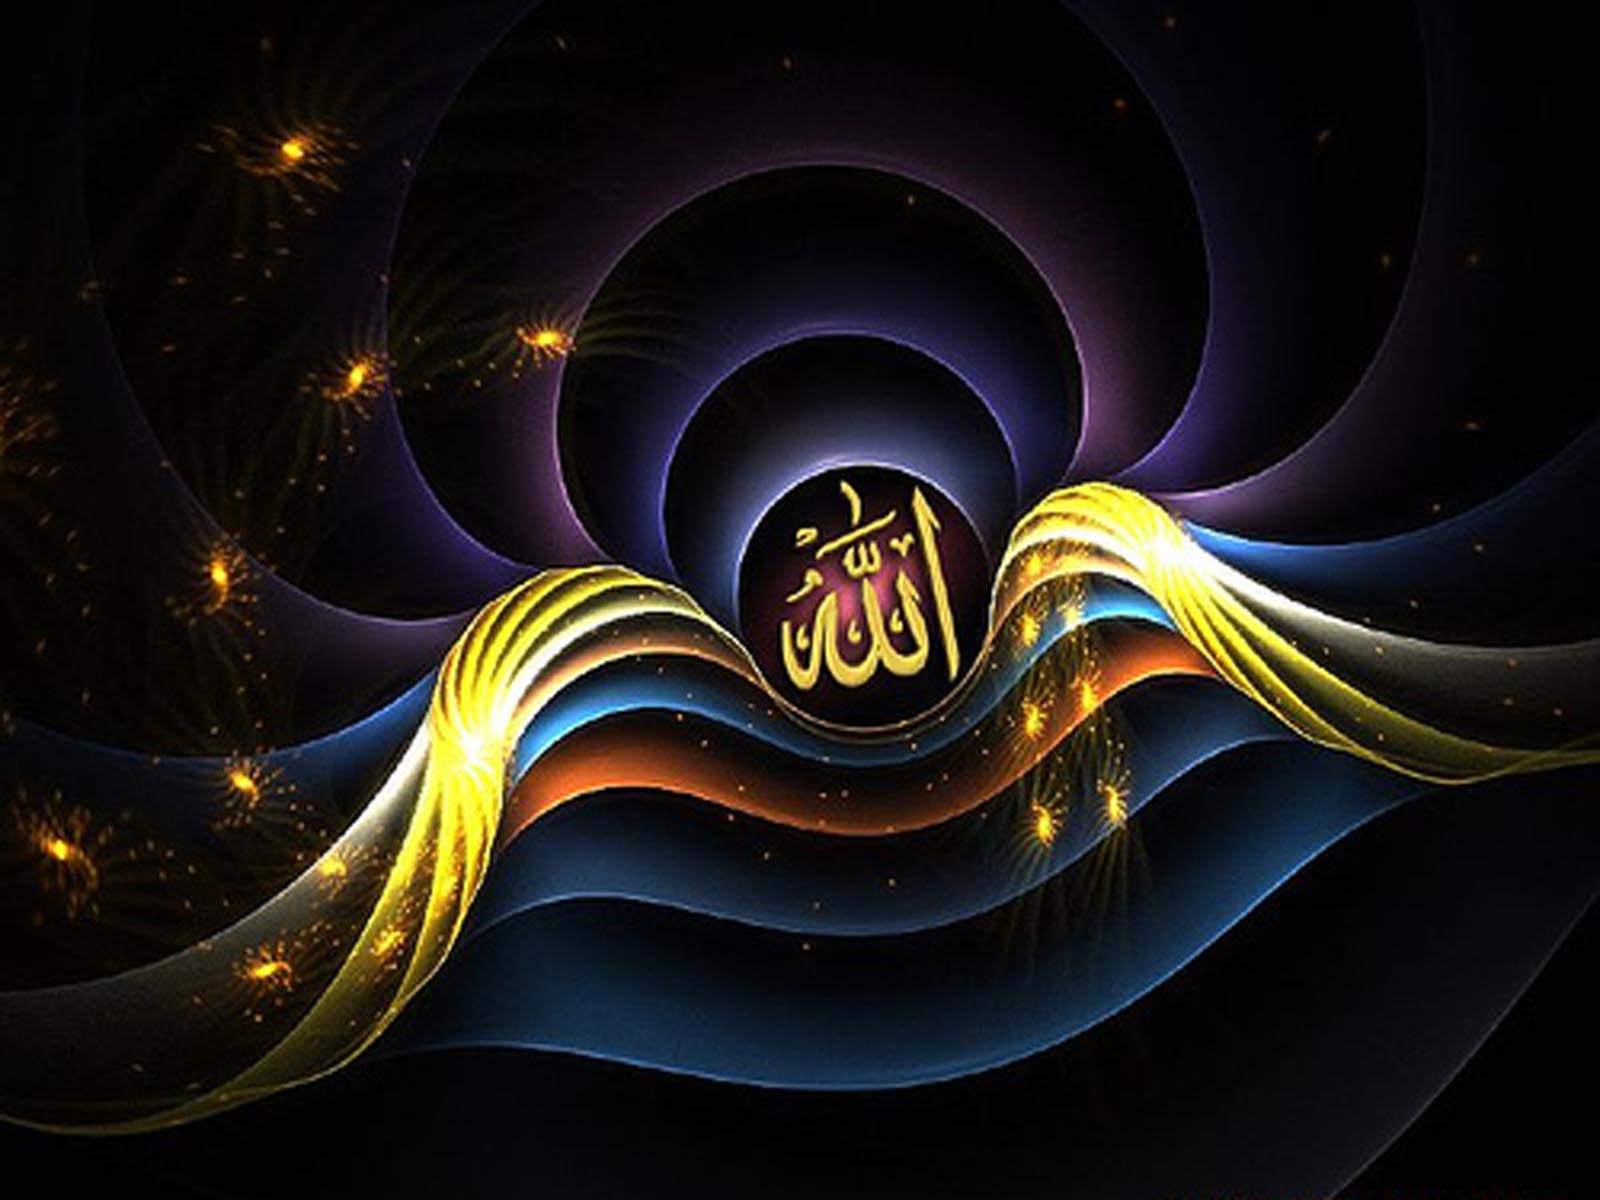 wallpaper 4 allah name wallpaper 5 allah name wallpaper 6 1600x1200